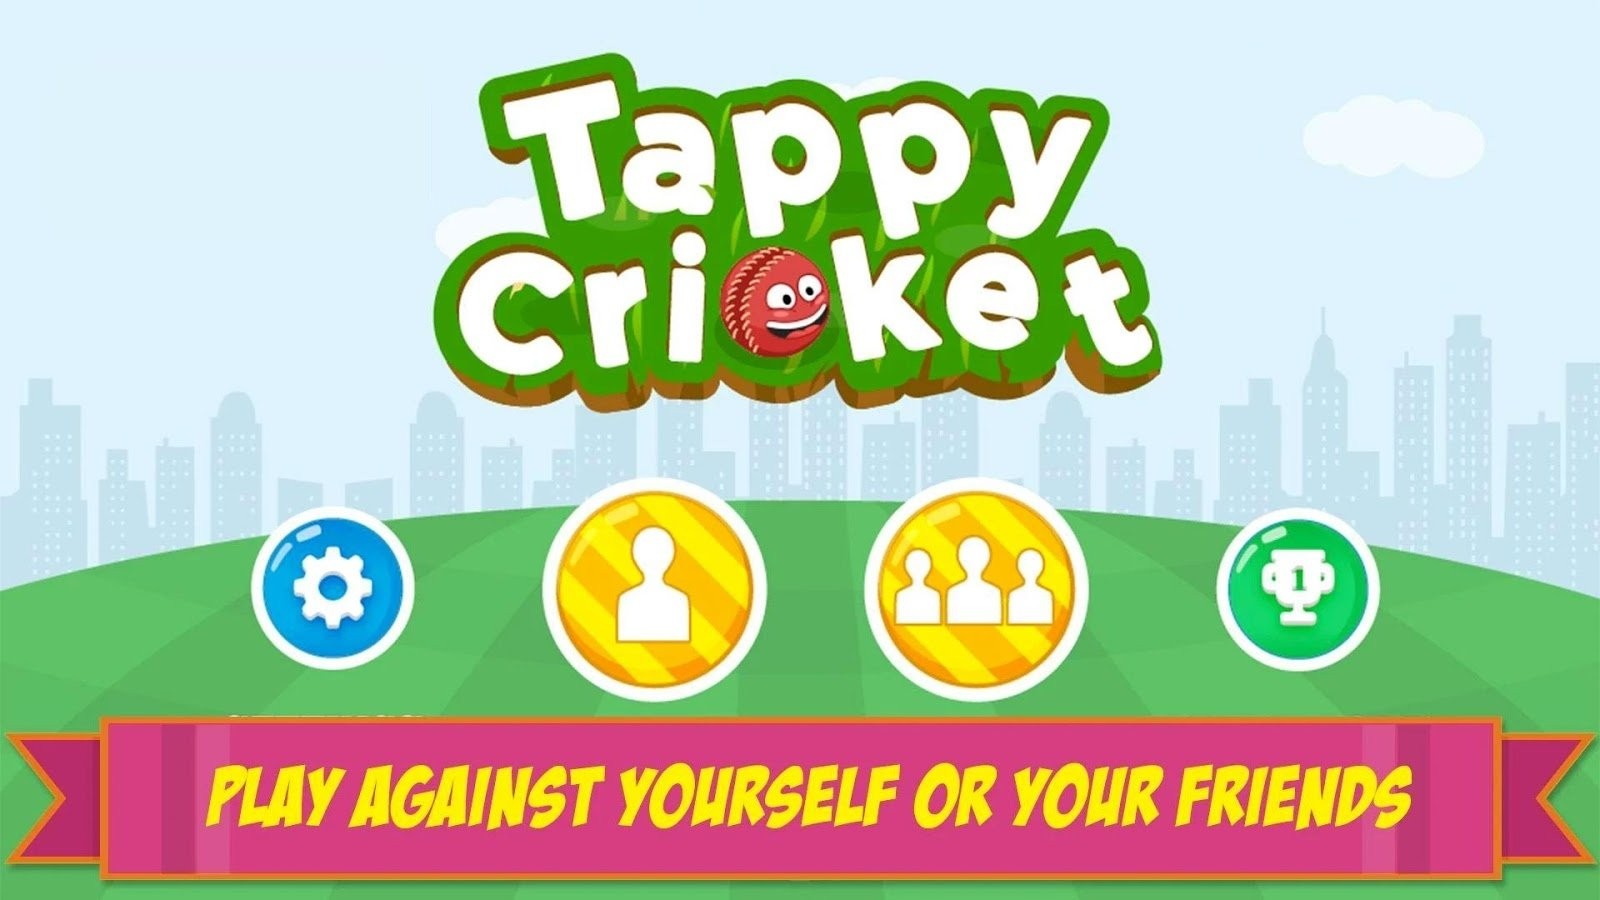 Tappy Cricket Android image 5